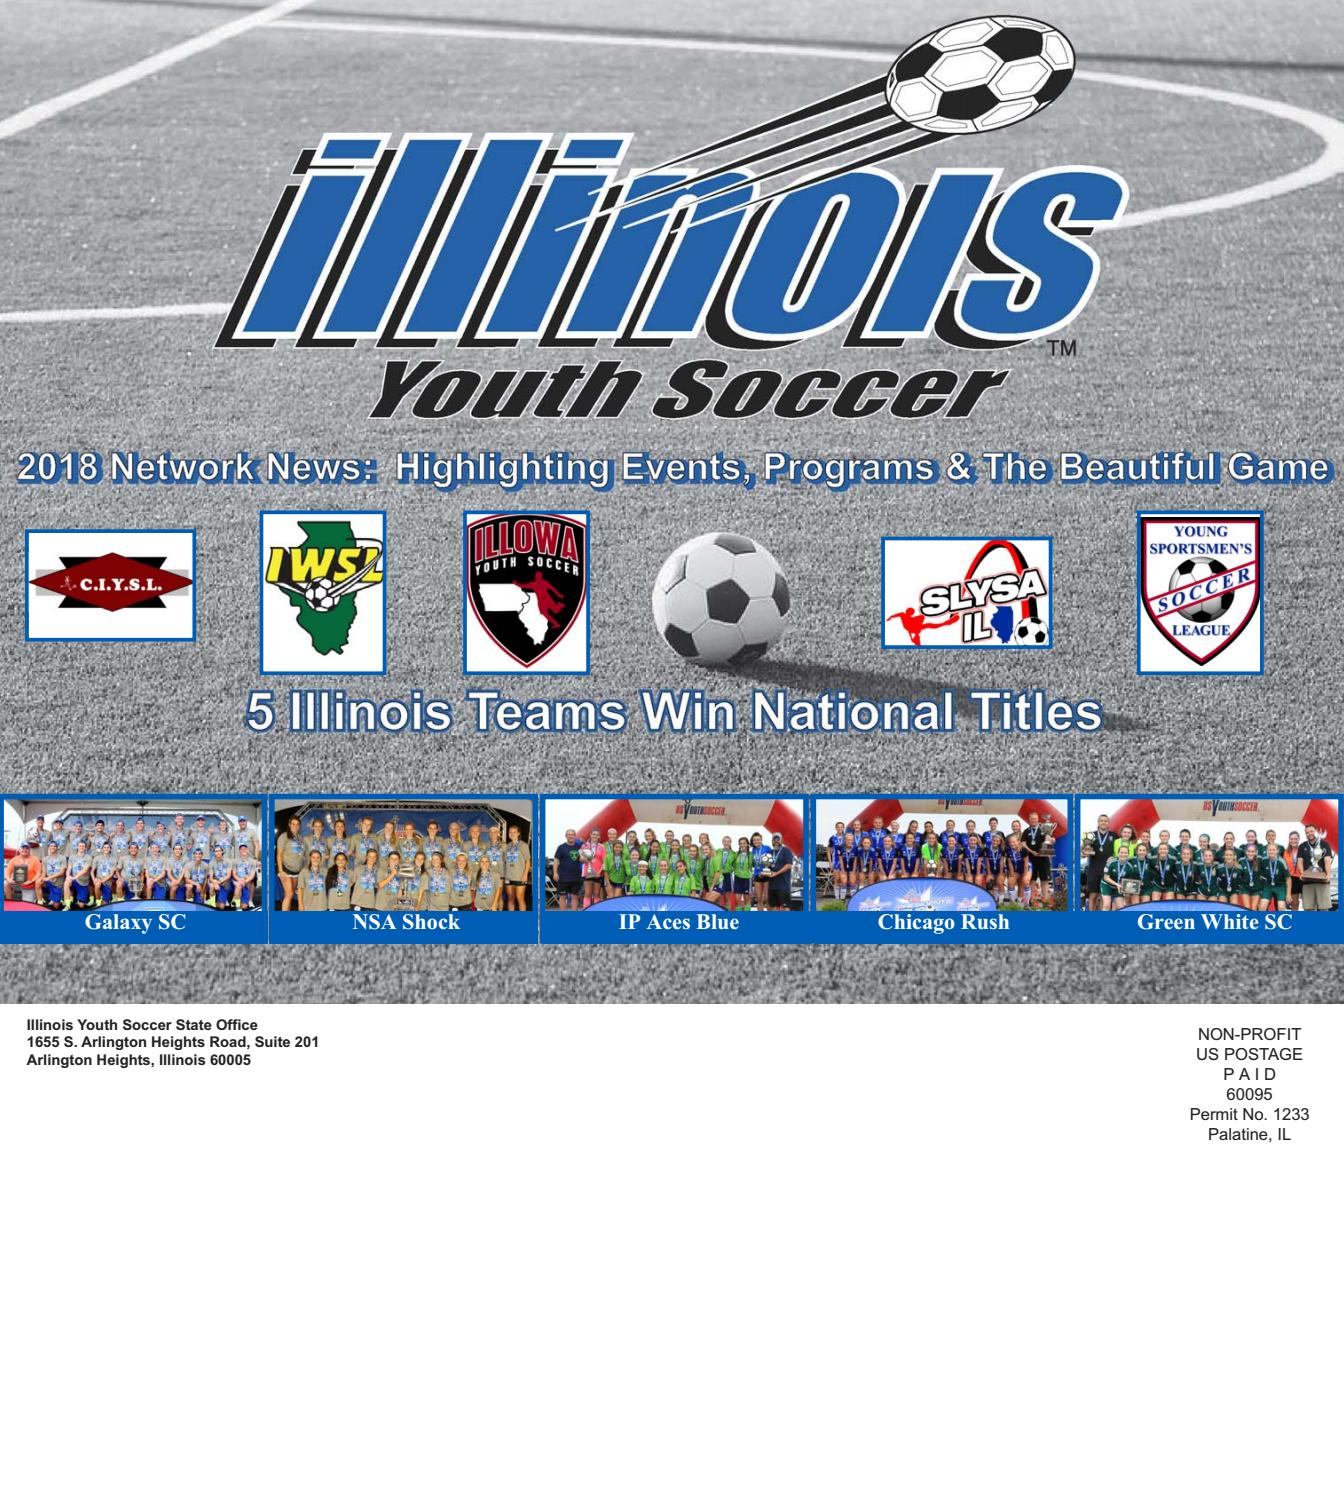 8526bebc260 2018 Illinois Youth Soccer Network News by Illinois Youth Soccer - issuu